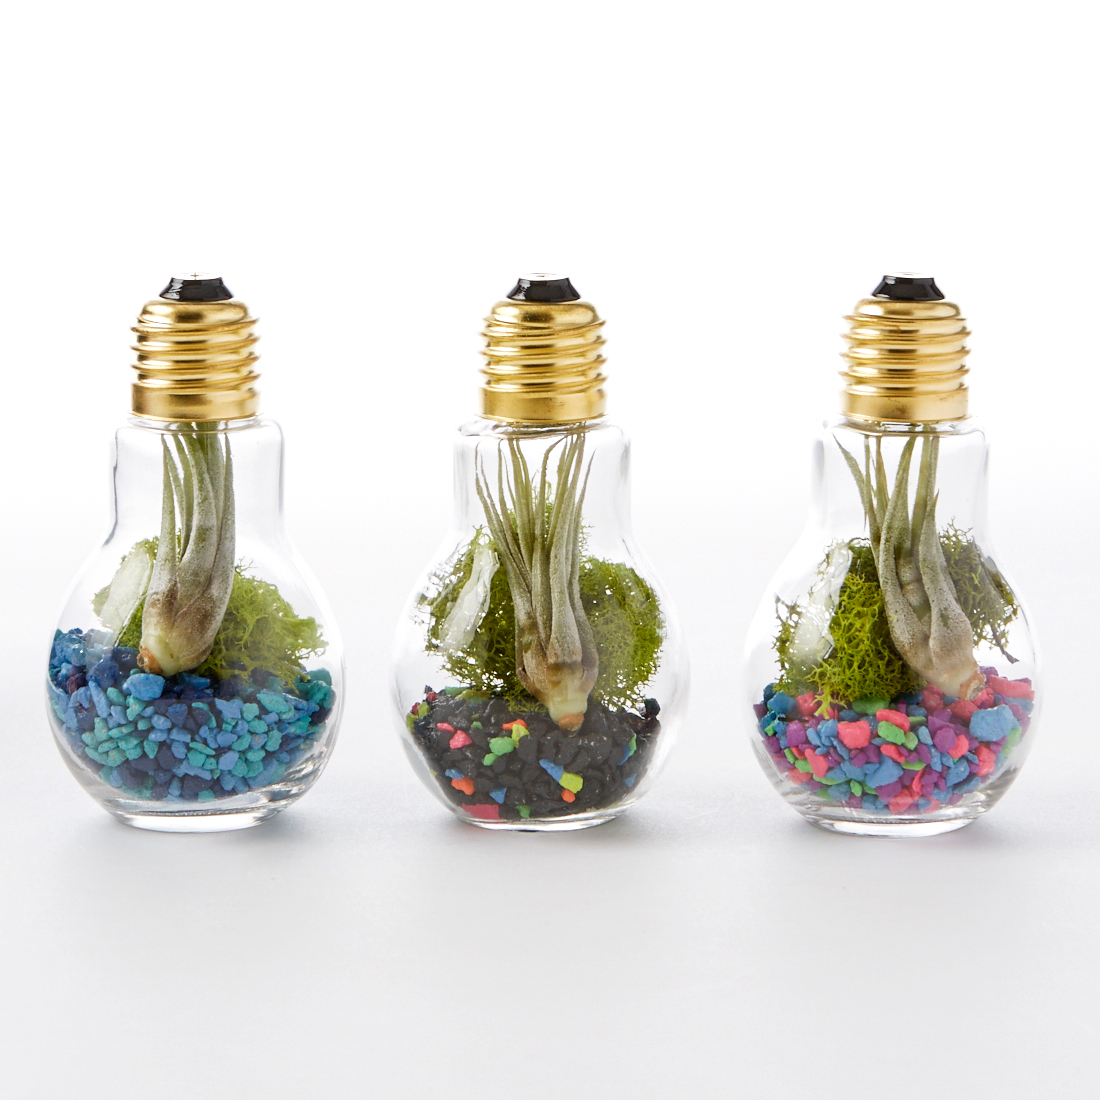 Follow the above steps for the Light Bulb Terrarium, then just add water! Add some sea shells, too, or a tiny ship. Note that the only other difference is the base. If you choose a stone like we did, use a glue gun to adhere the bulb.